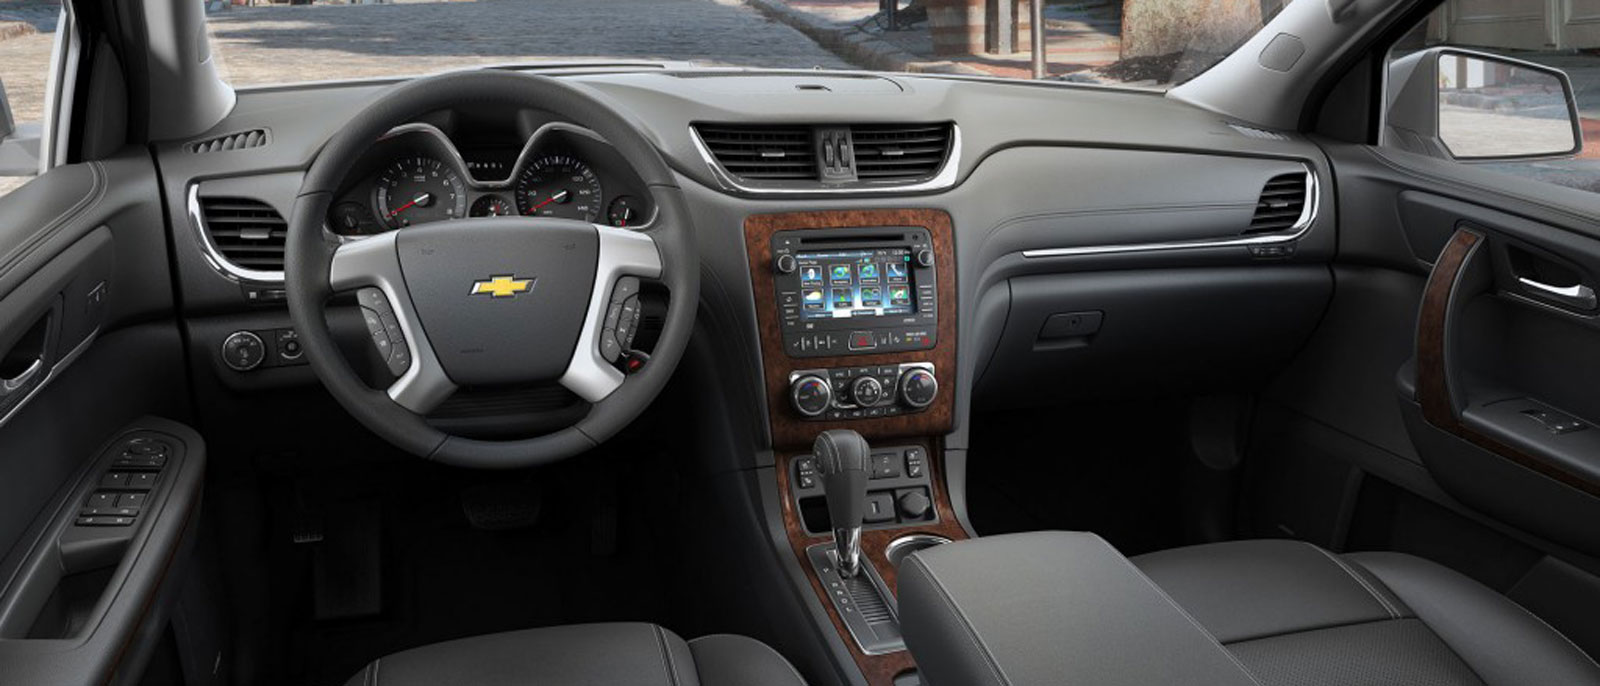 2015 Chevy Traverse  DePaula Chevrolet